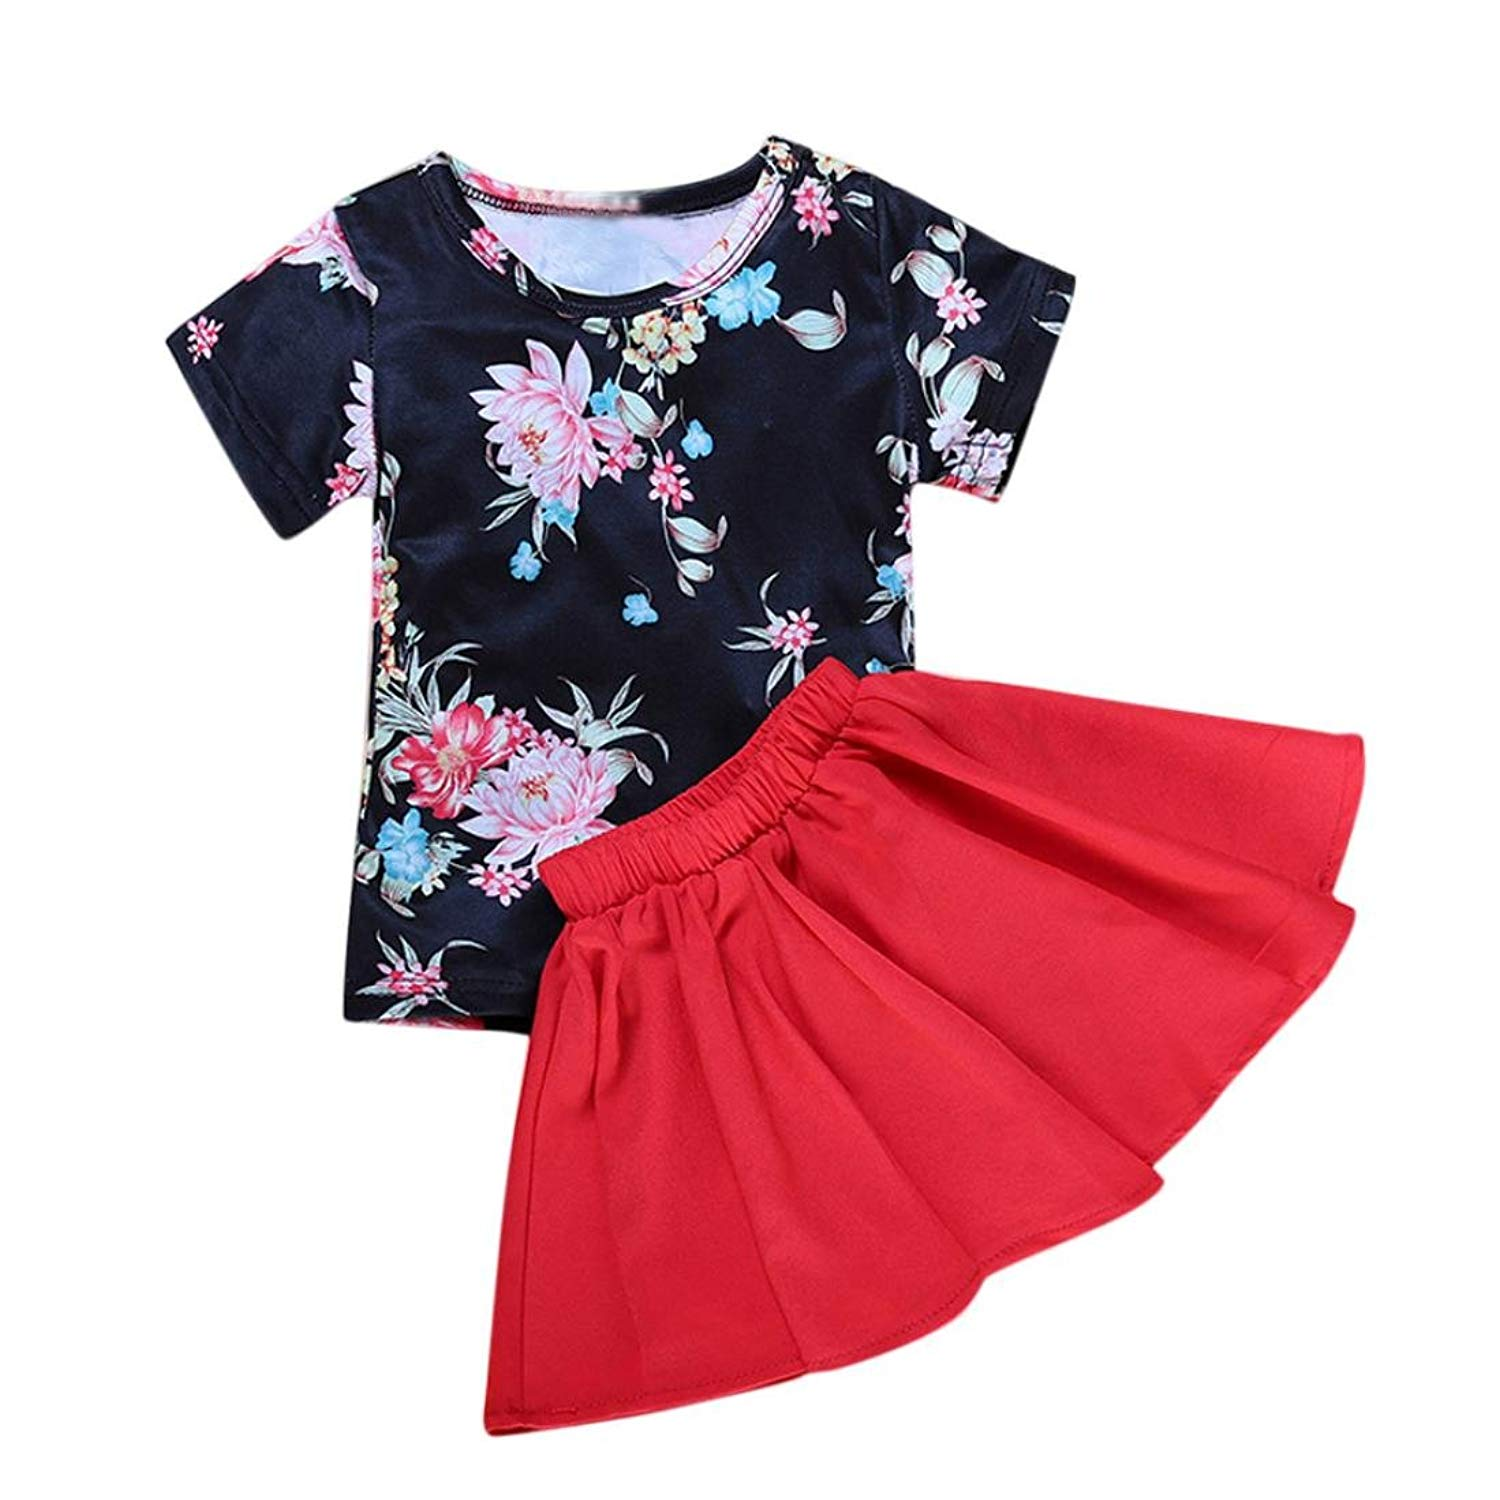 643d54315 Get Quotations · Girls Clothing Sets, Floral Girl Dress Short Sleeve Top  T-Shirt+Skirt Outfits